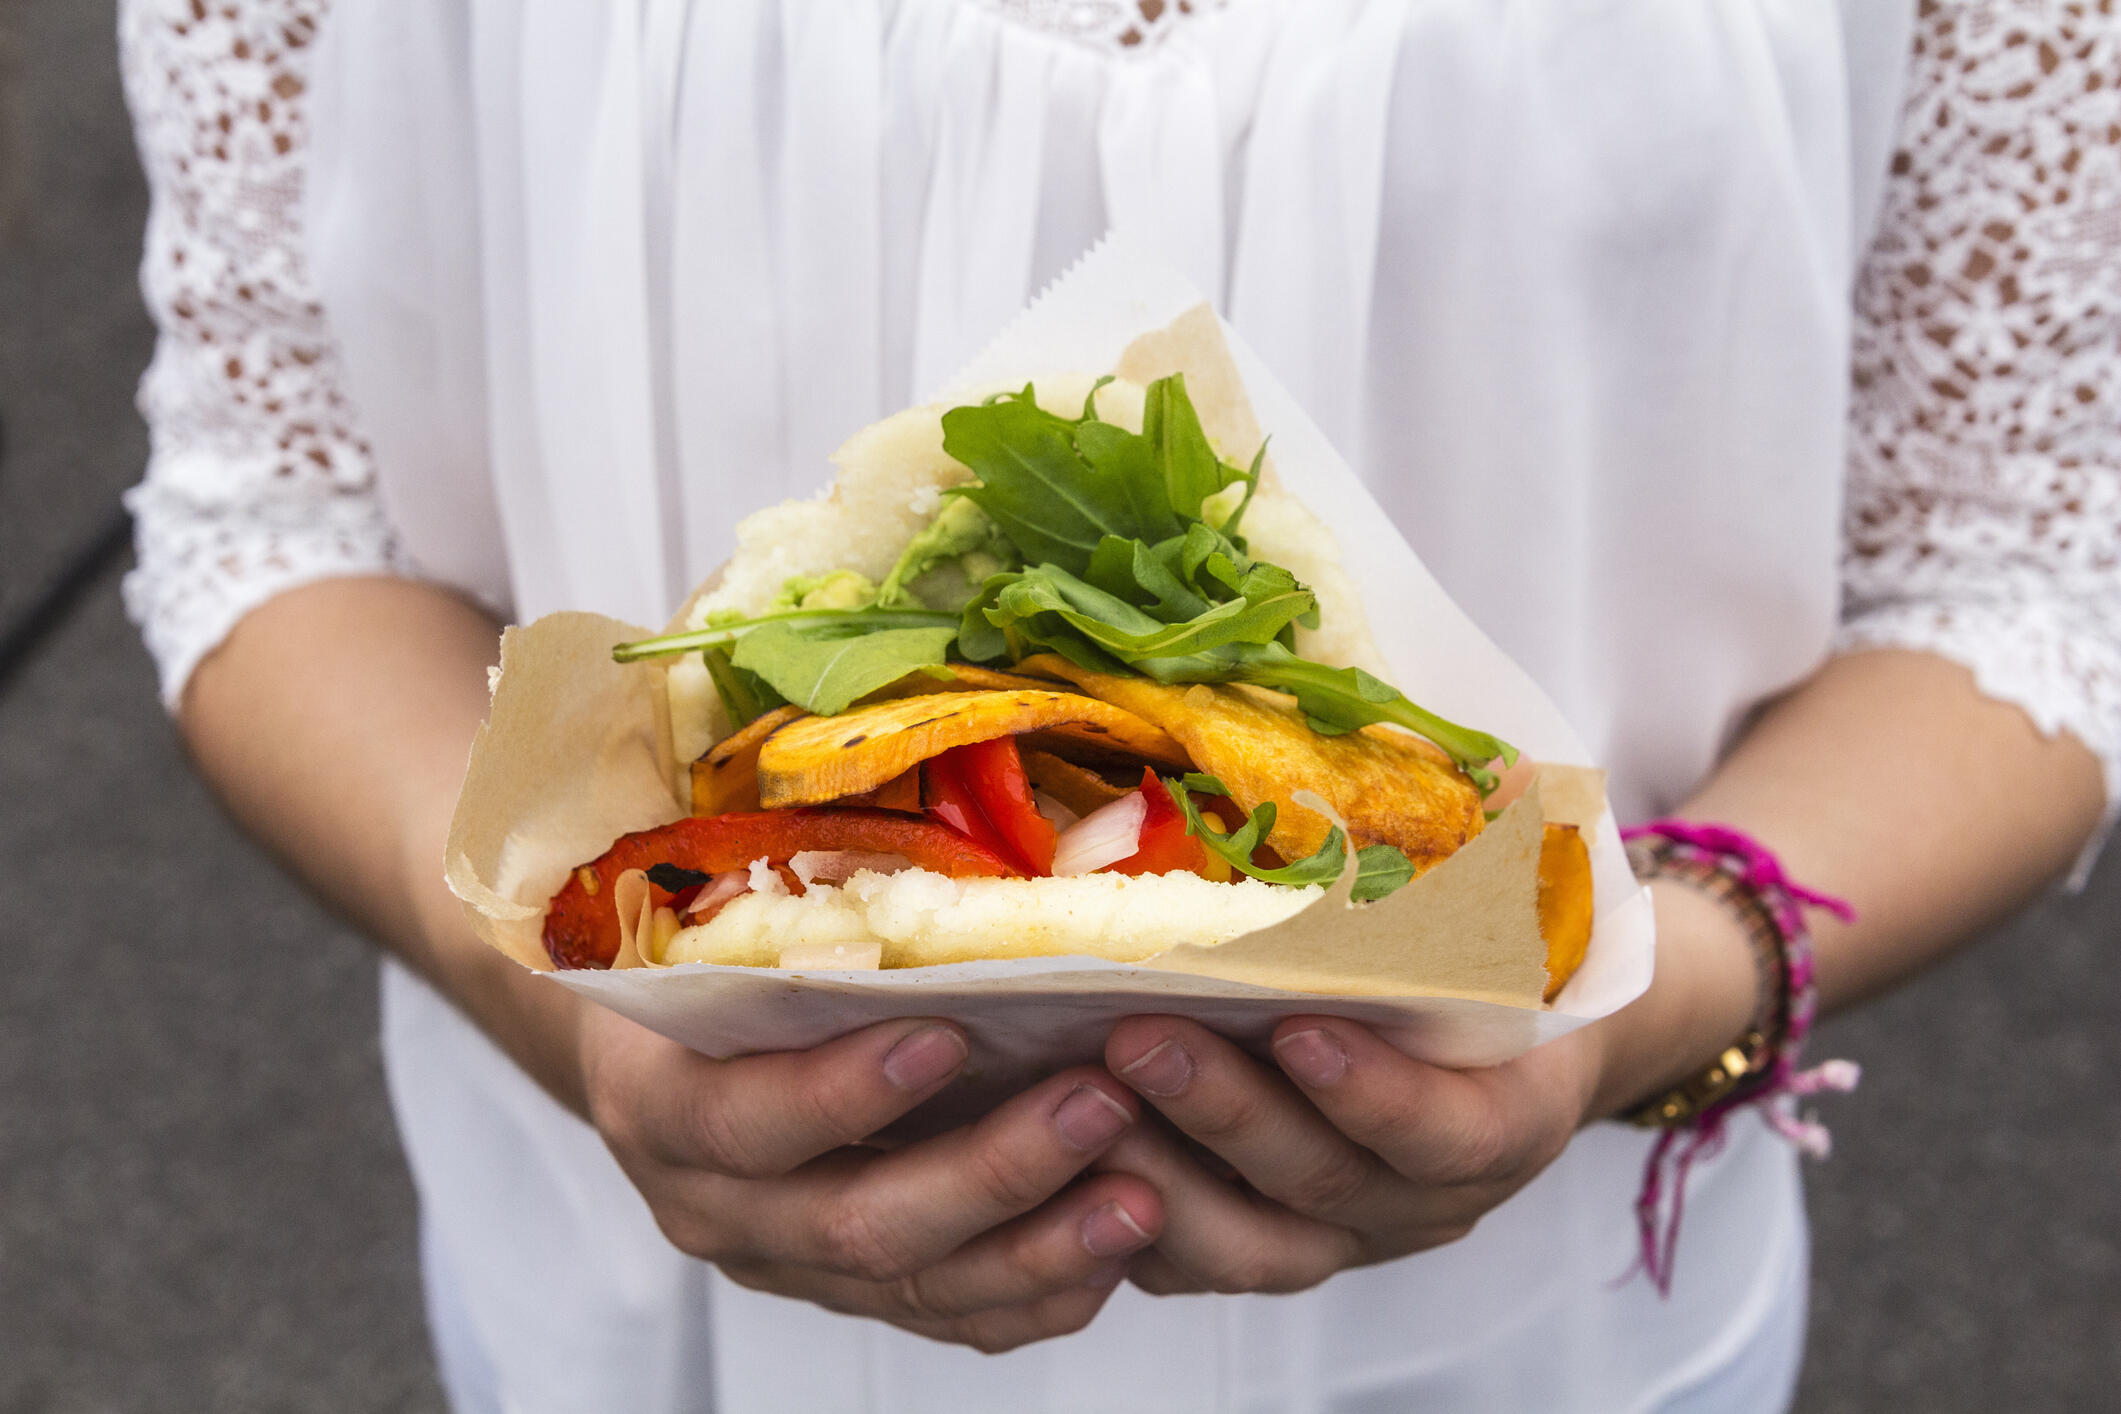 woman in white shirt holding vegan sandwich, close-up of hands